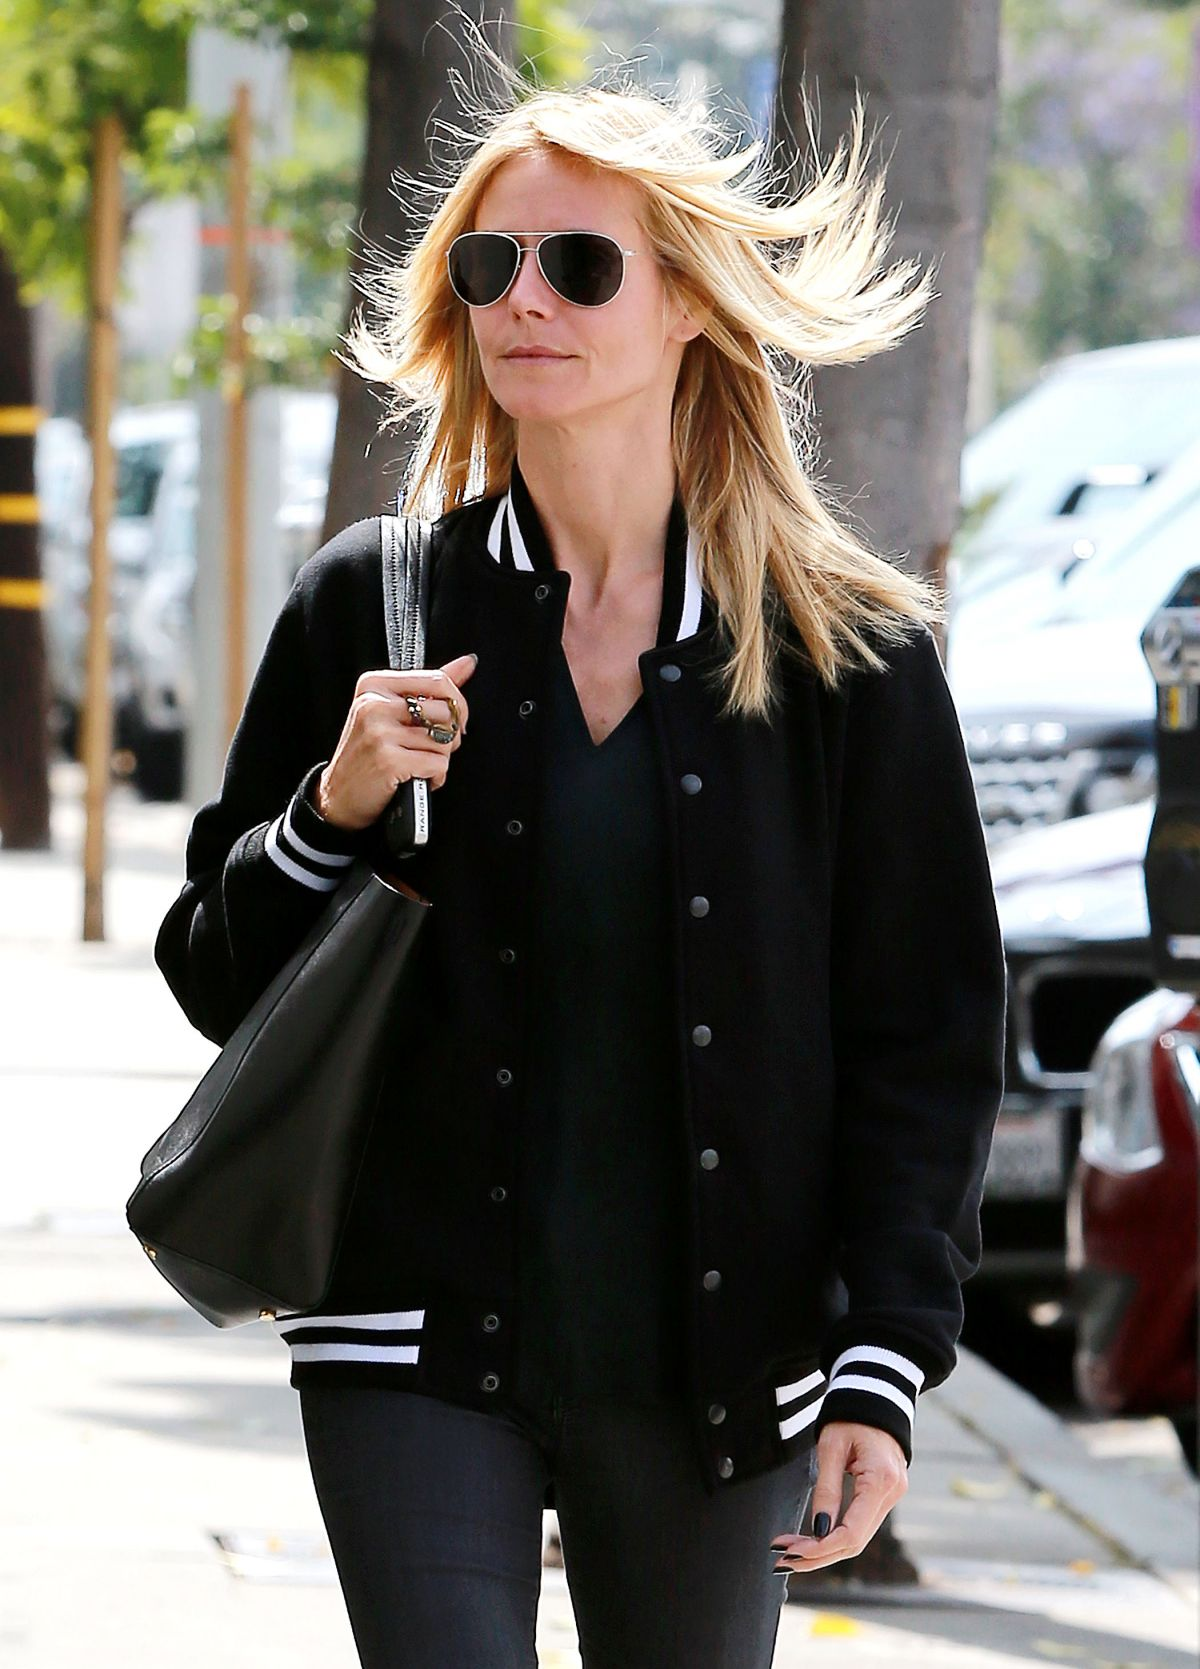 HEIDI KLUM Heading to a Hair Salon in Los Angeles 05/26/2015